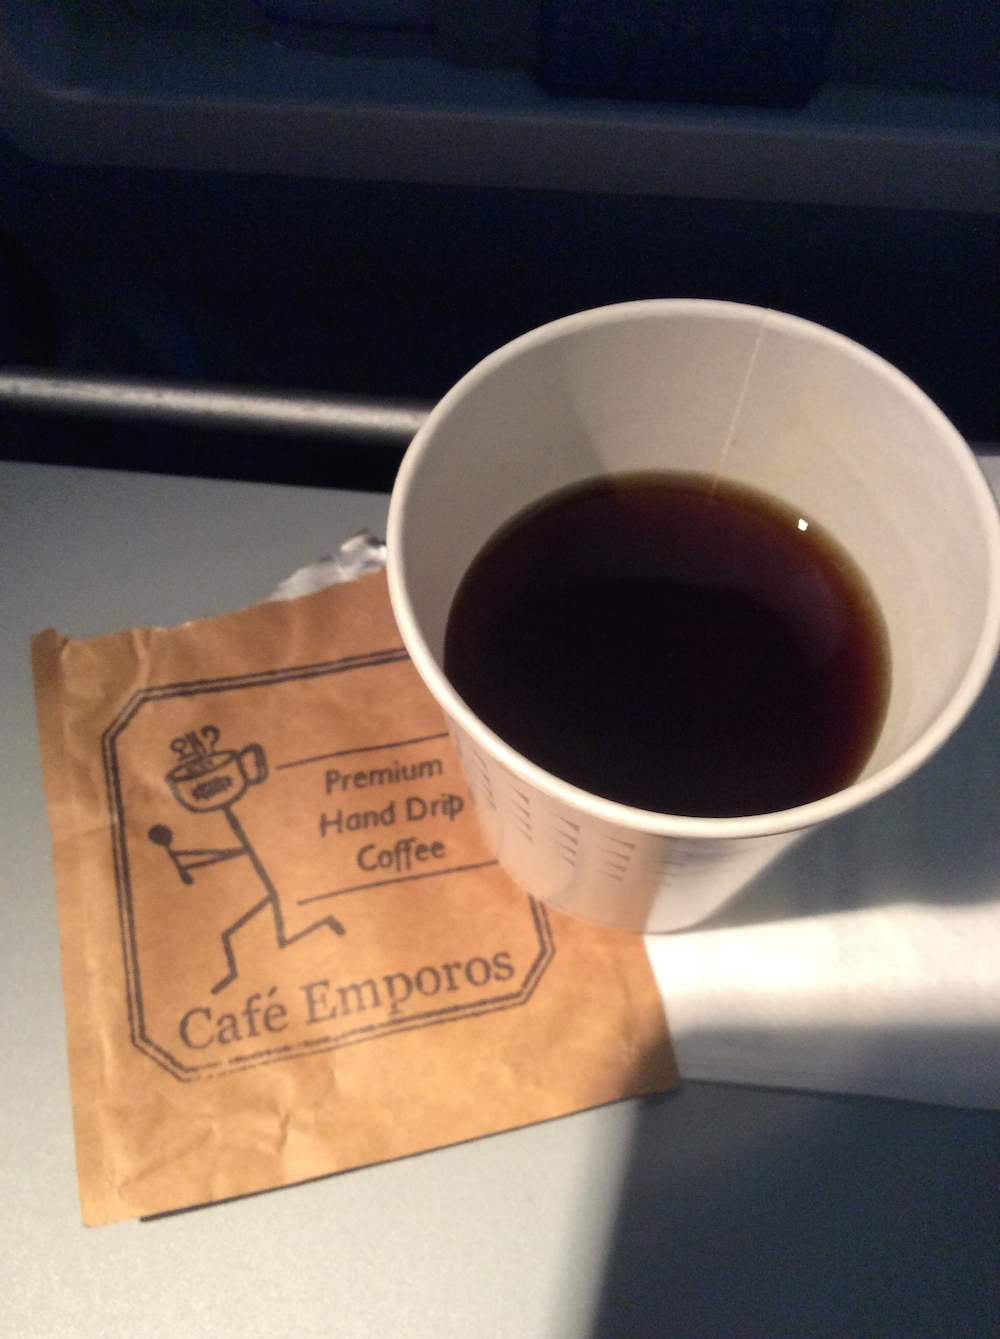 Fresh hand dripped coffee on the airplane courtesy of Cafe Emporos